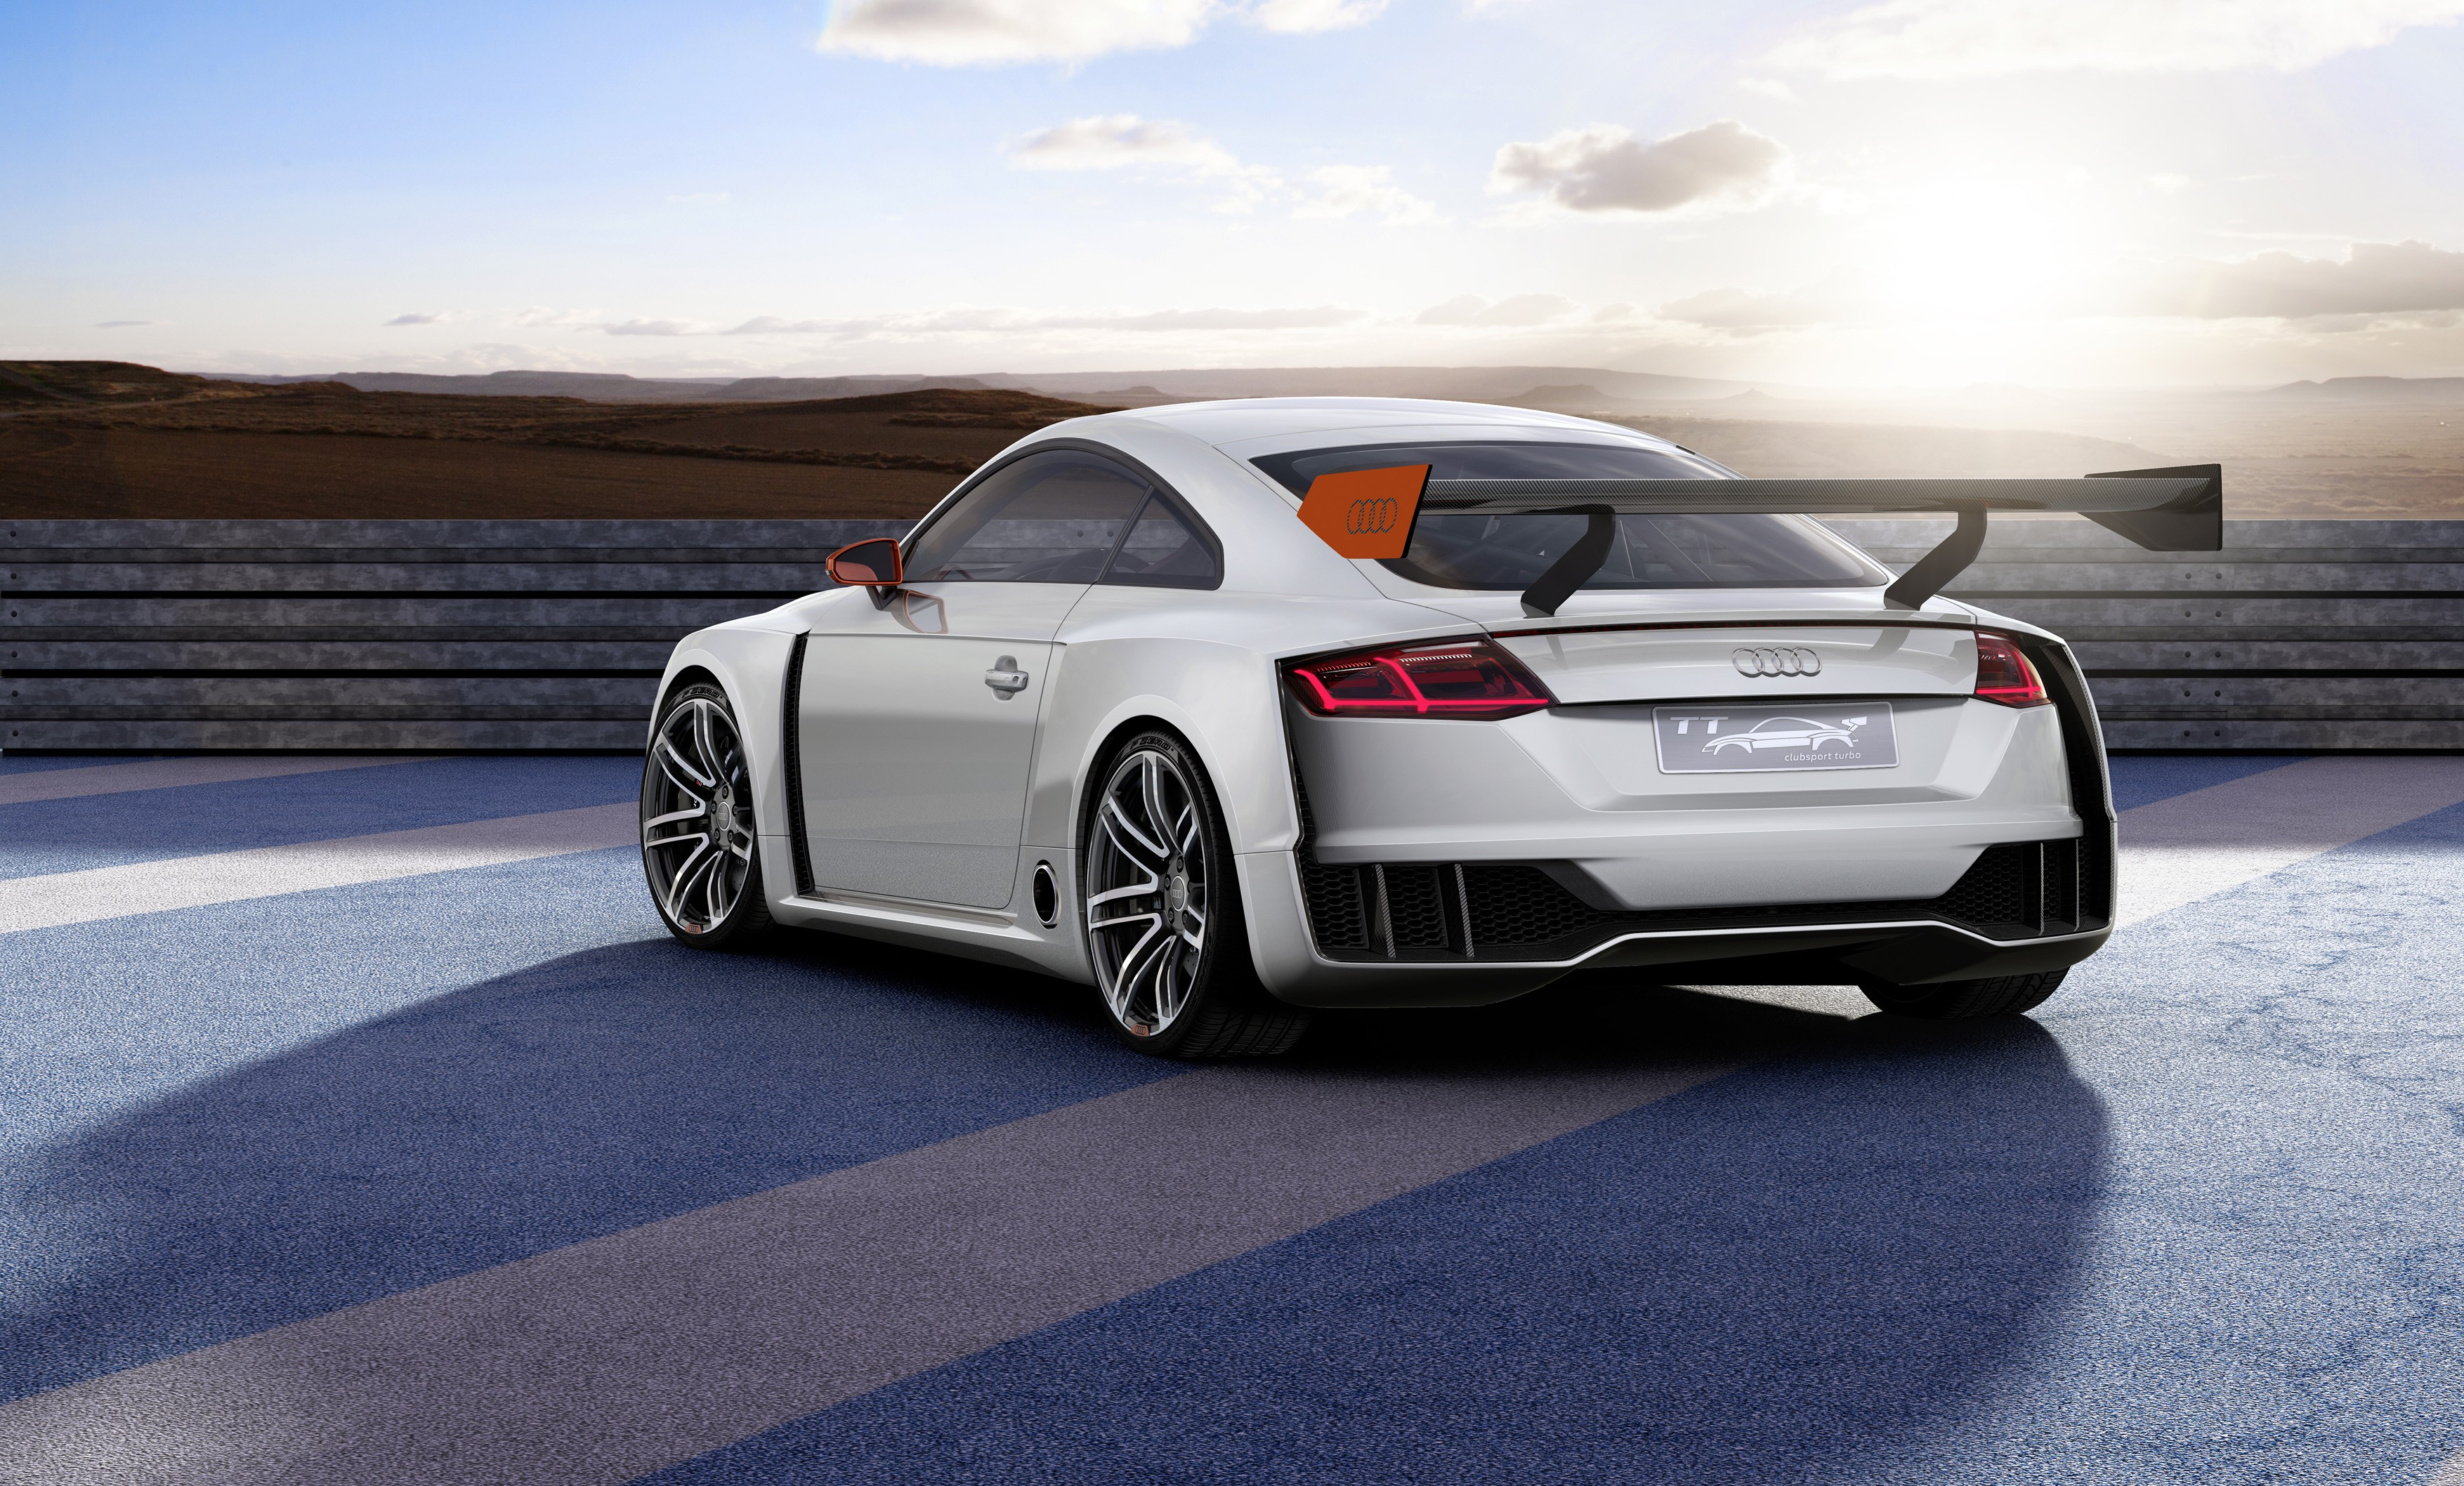 2015 Audi TT Clubsport Turbo Concept 2 2015 Audi TT Clubsport Turbo Concept